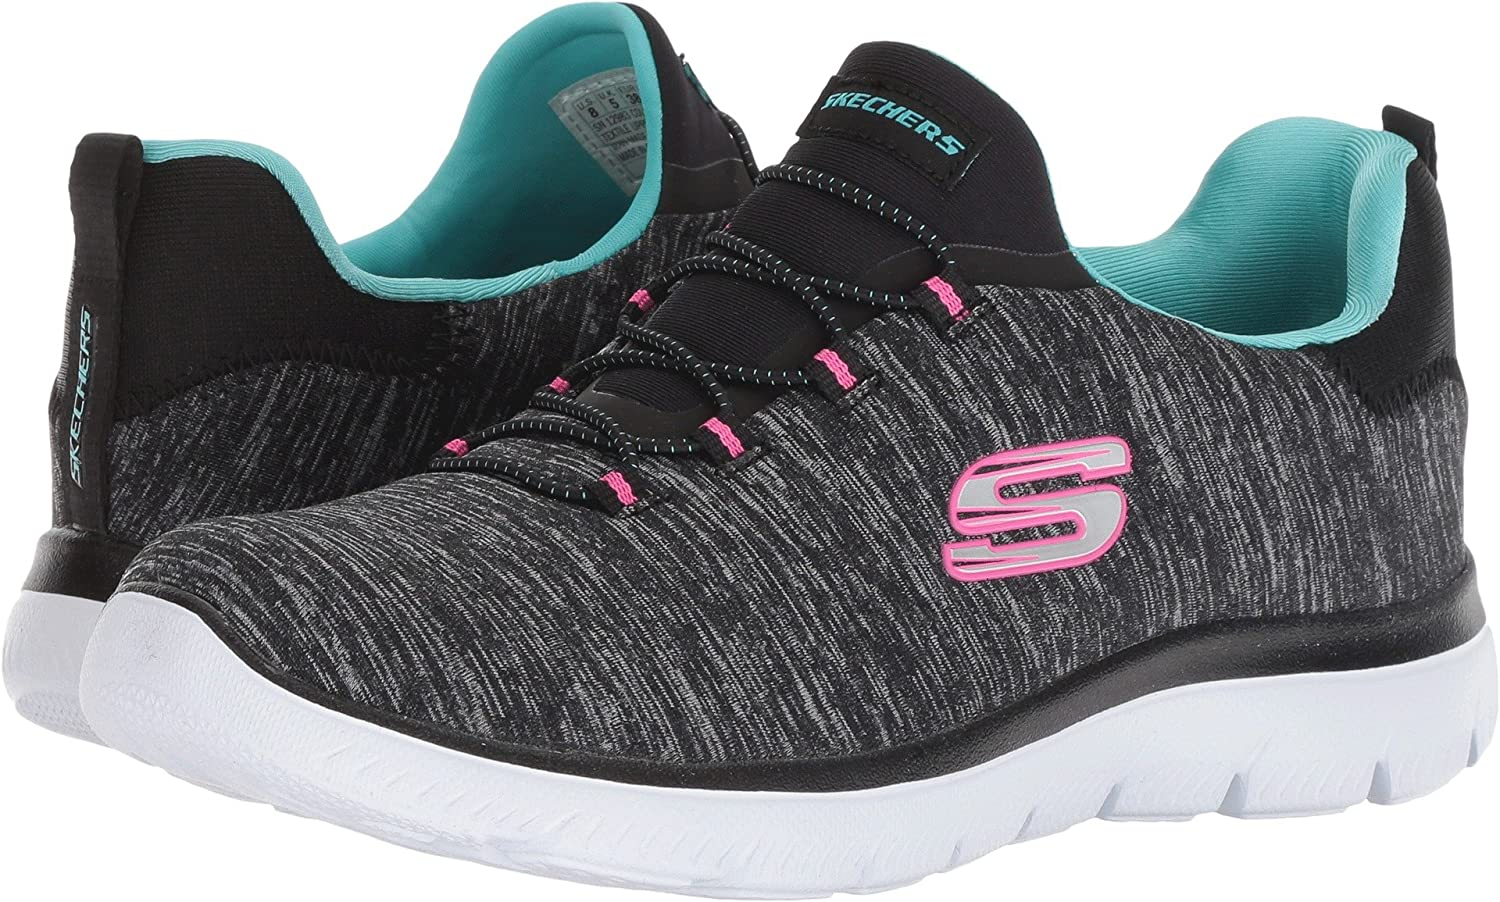 Skechers Women's Summits Sneaker B07BKLXNCC 10 M US|Black/Light Blue